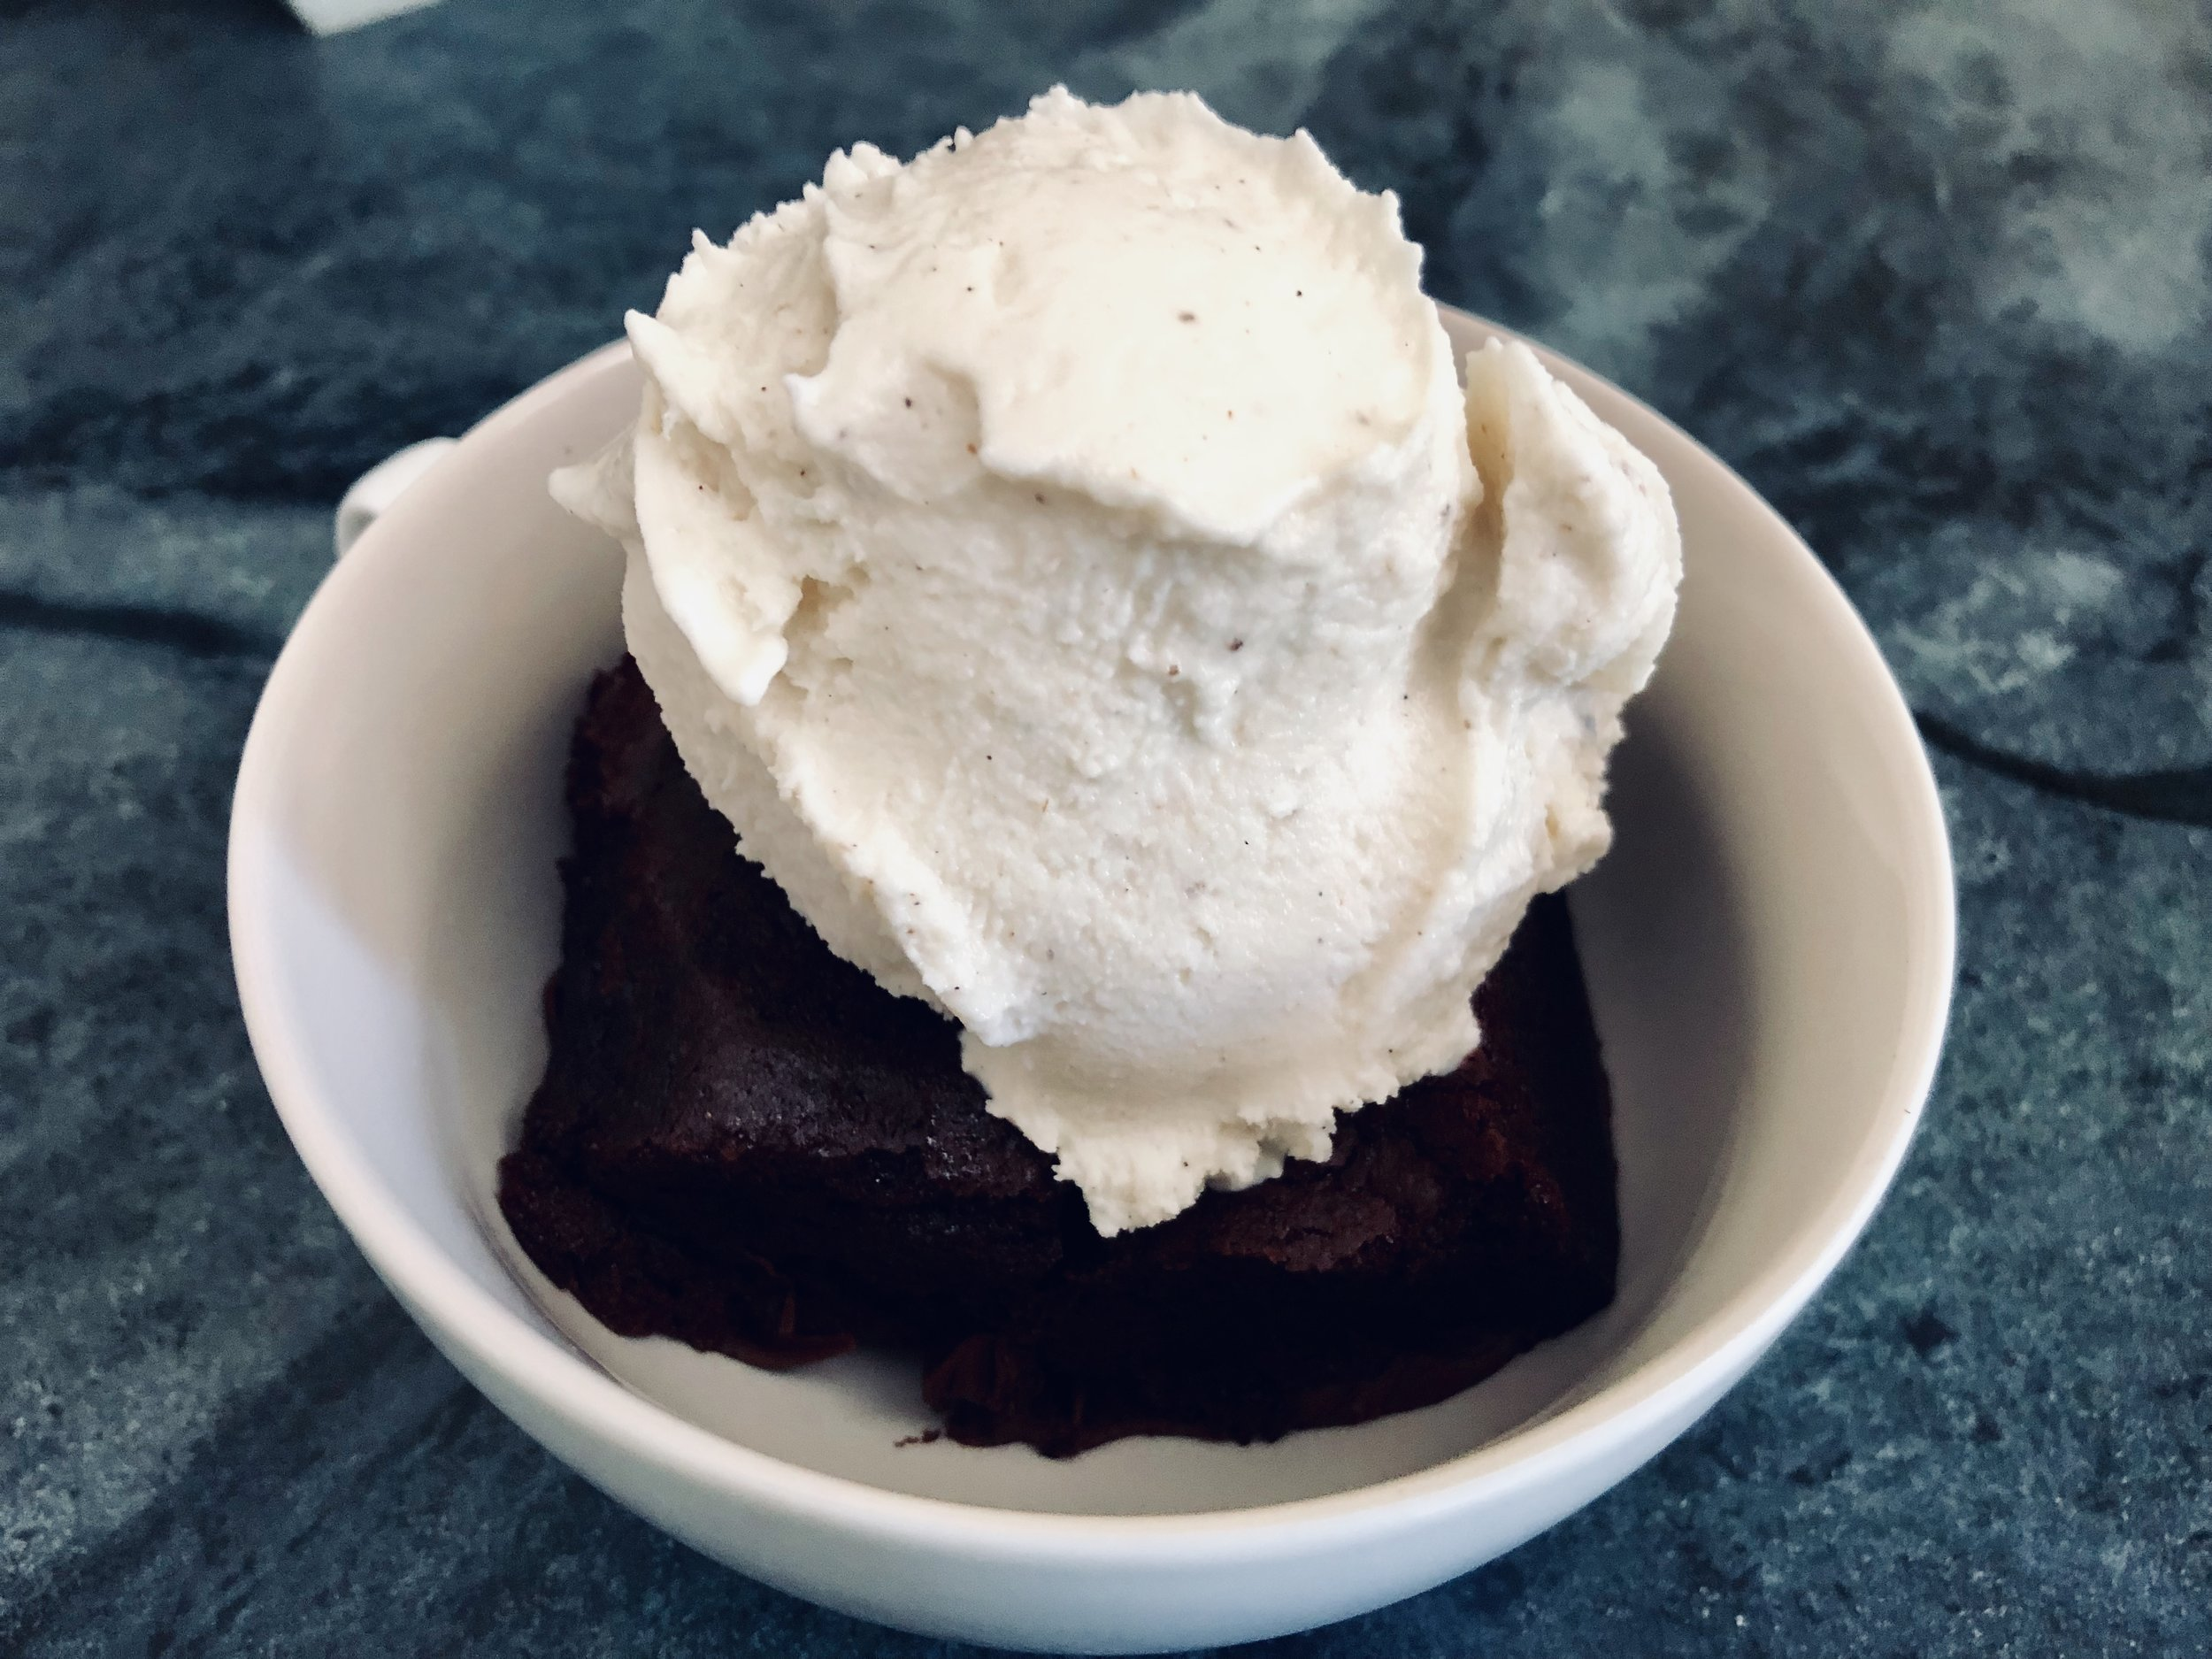 Place a brownie (or two) in the bottom of a dish or cup and top with ice-cream.